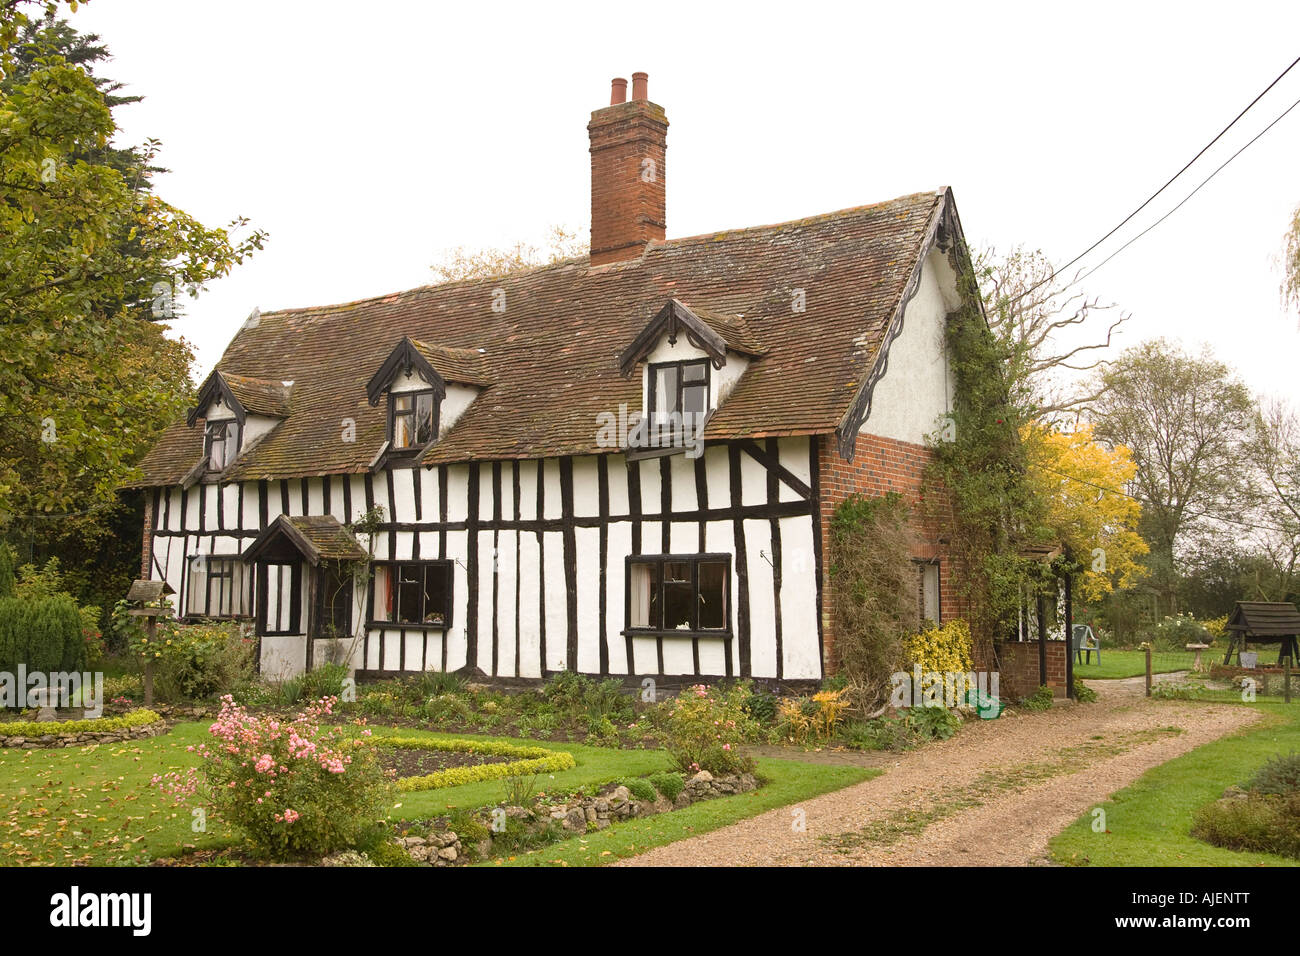 An Old Tudor Style Timber Framed Cottage In A Suffolk